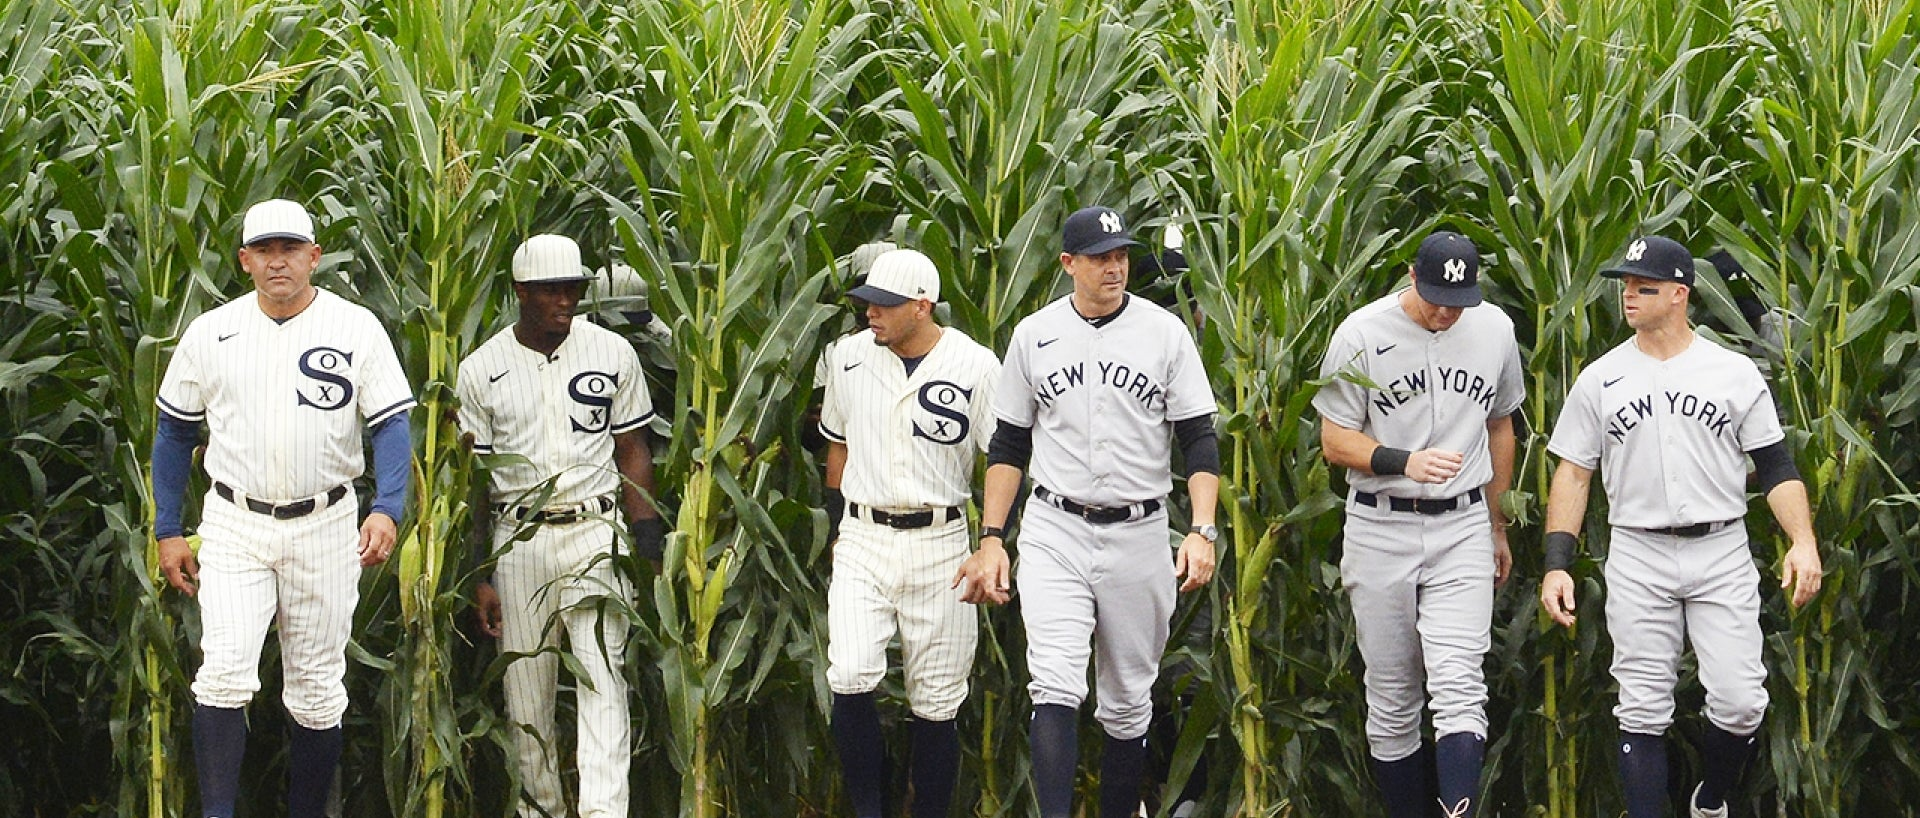 """The Yanks and White Socks enter the """"Field of Dreams"""" game by way of the cornfield."""